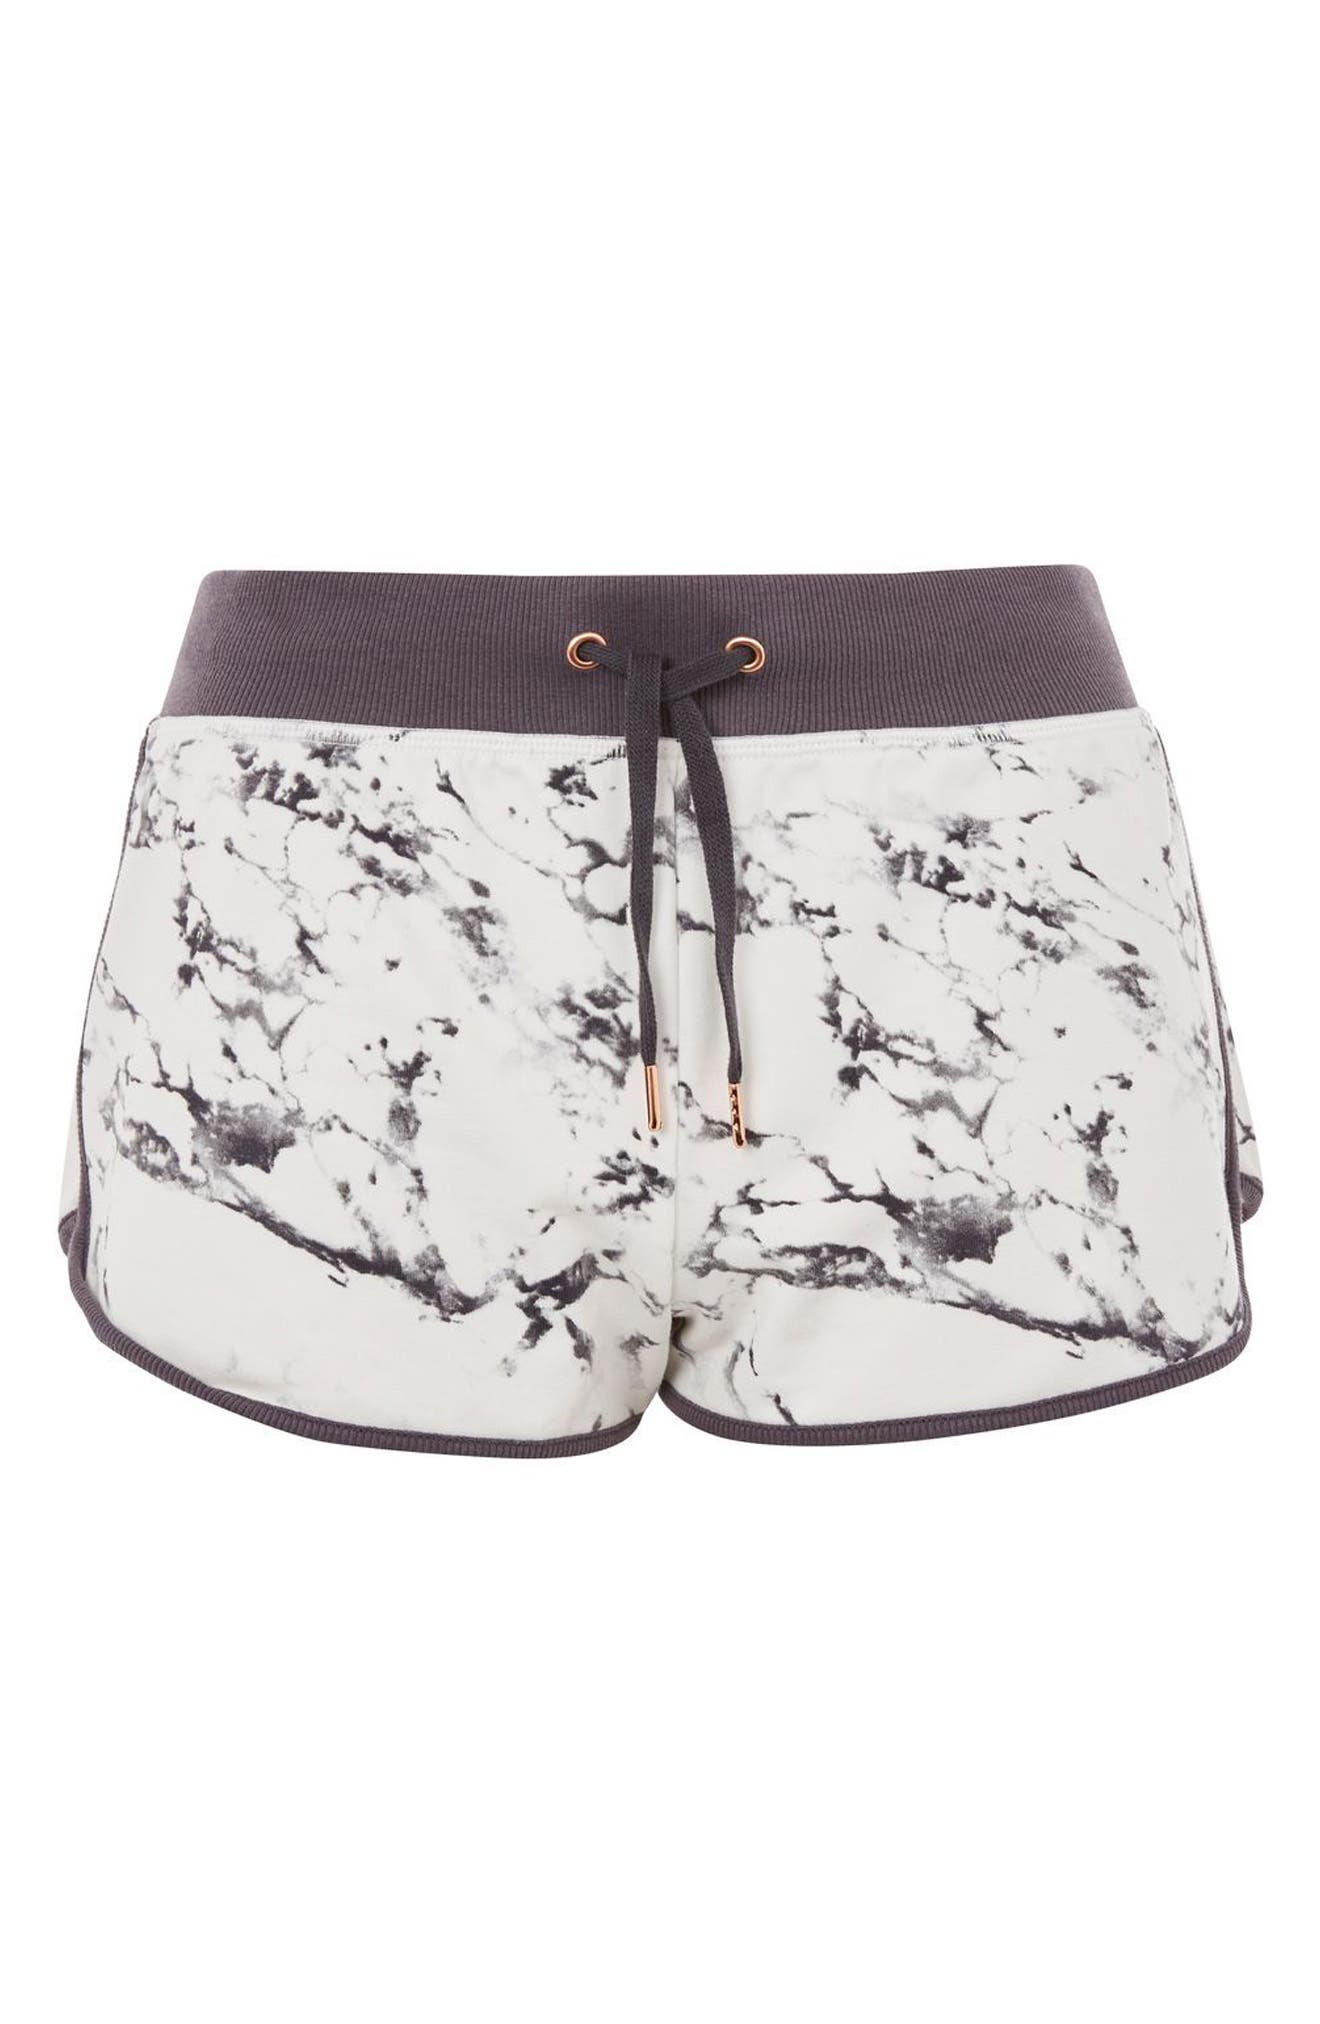 Marble Print Shorts,                         Main,                         color, Grey Multi